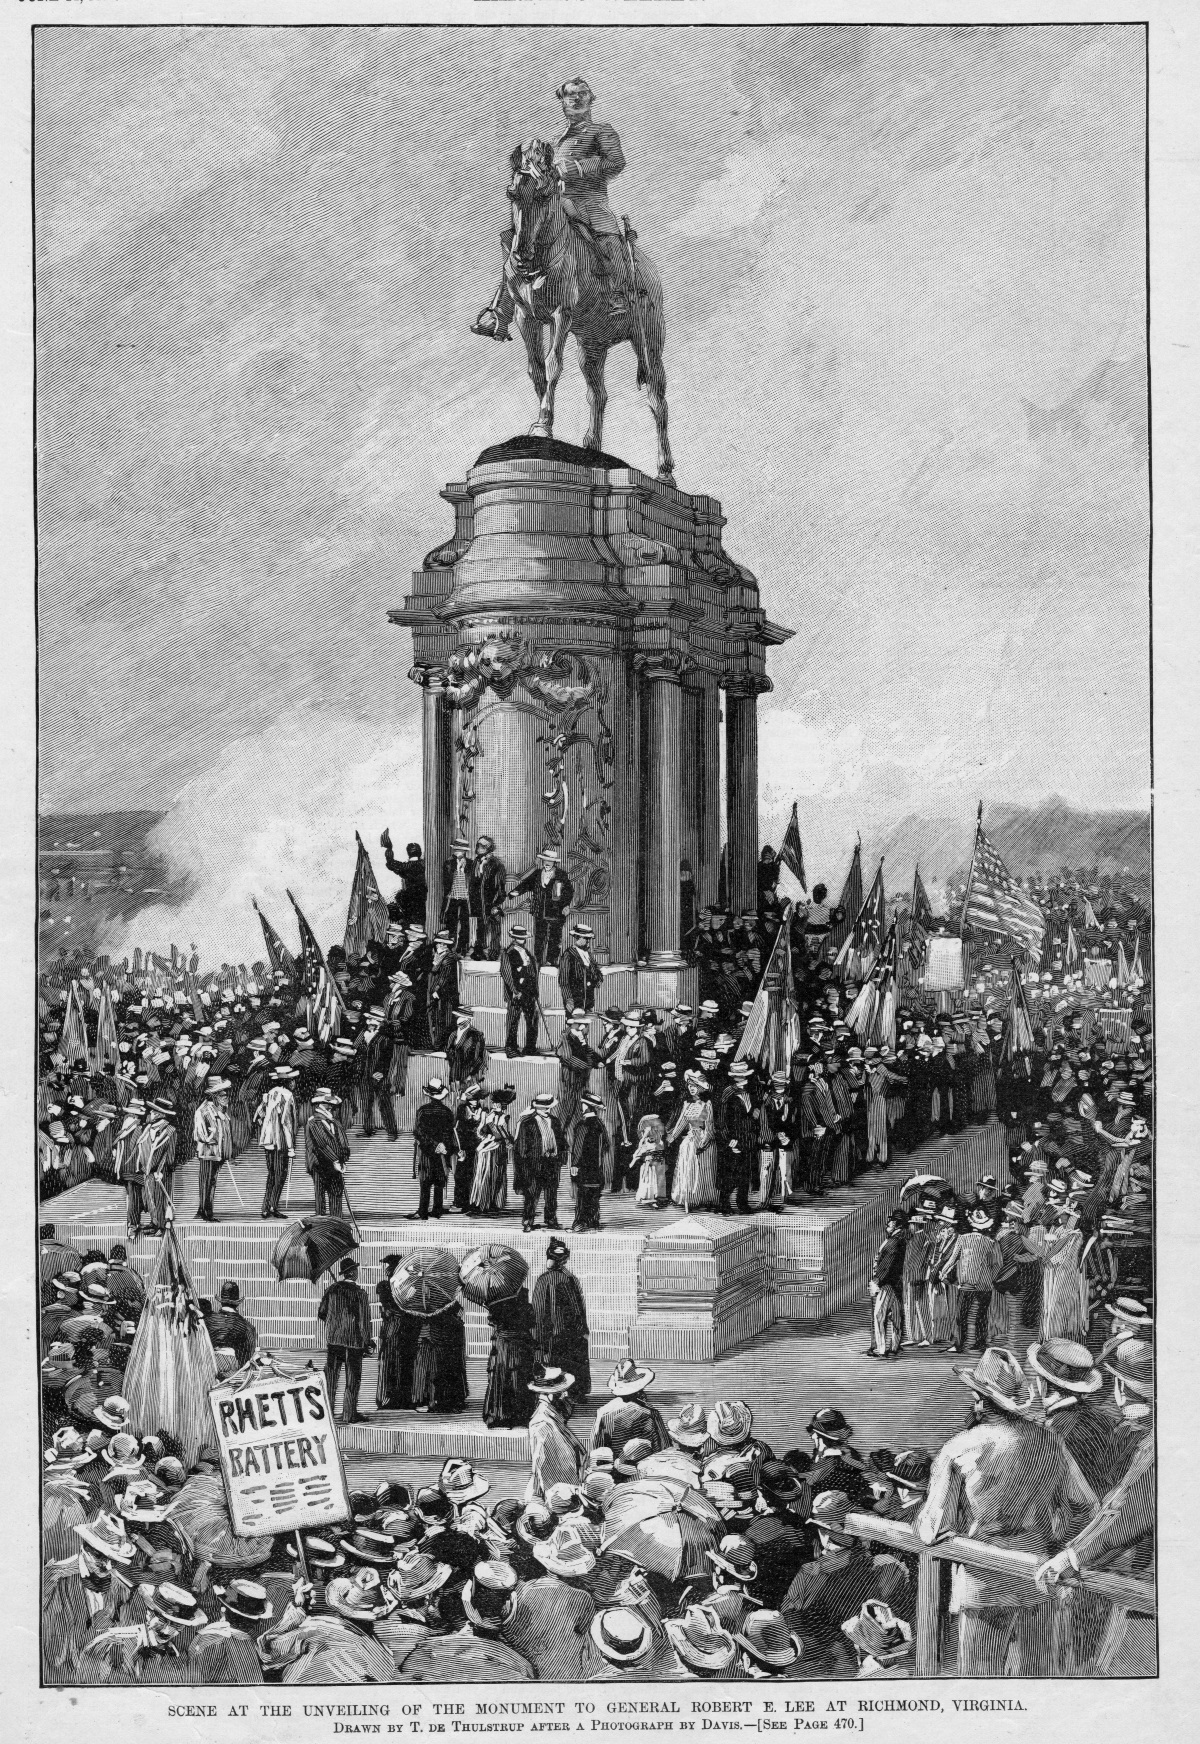 Complicated History: The Memorial to Robert E. Lee in Richmond